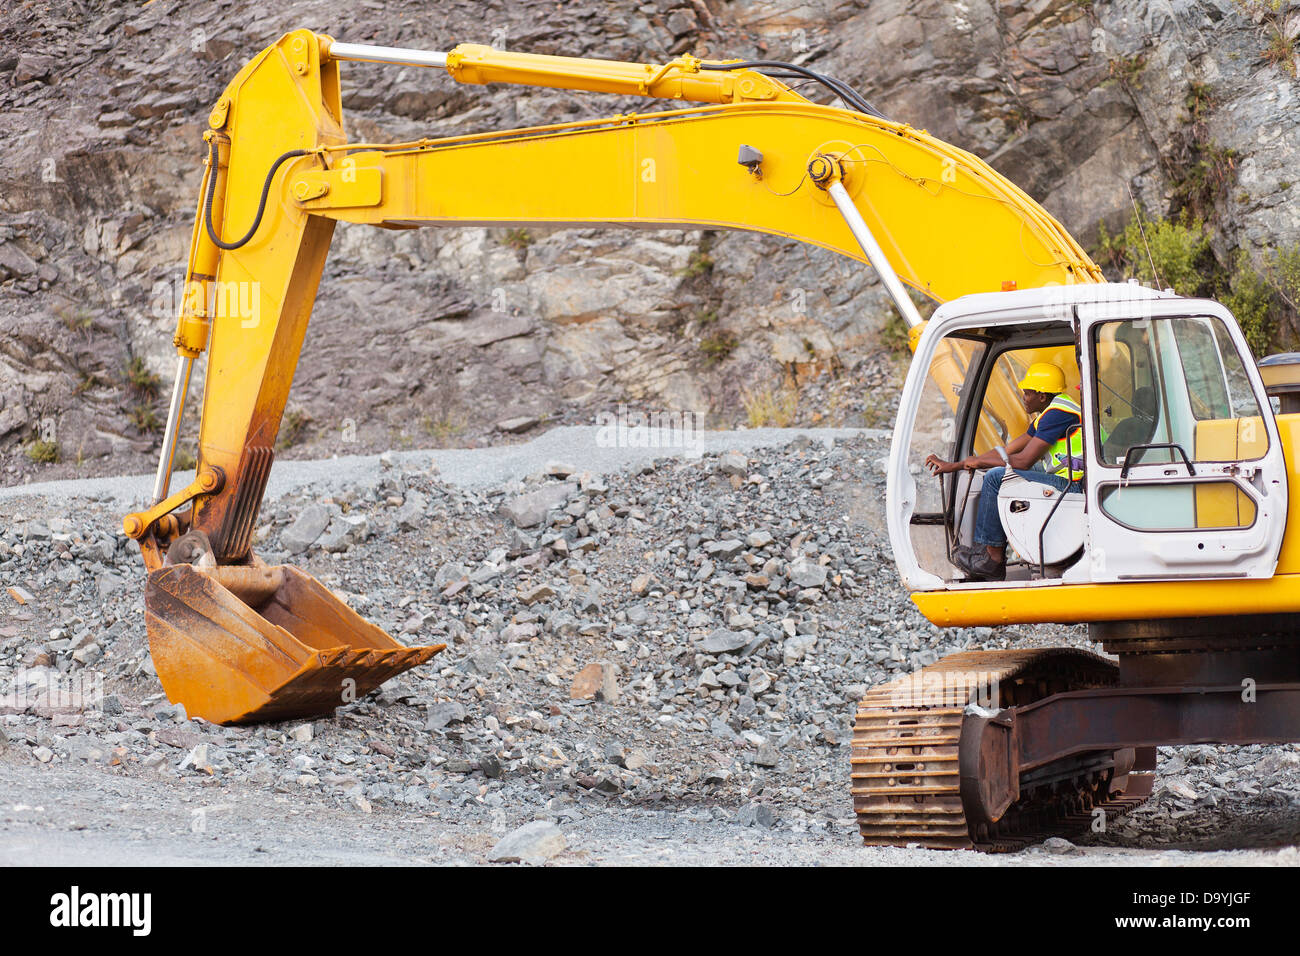 African road construction worker operating excavator on construction site - Stock Image